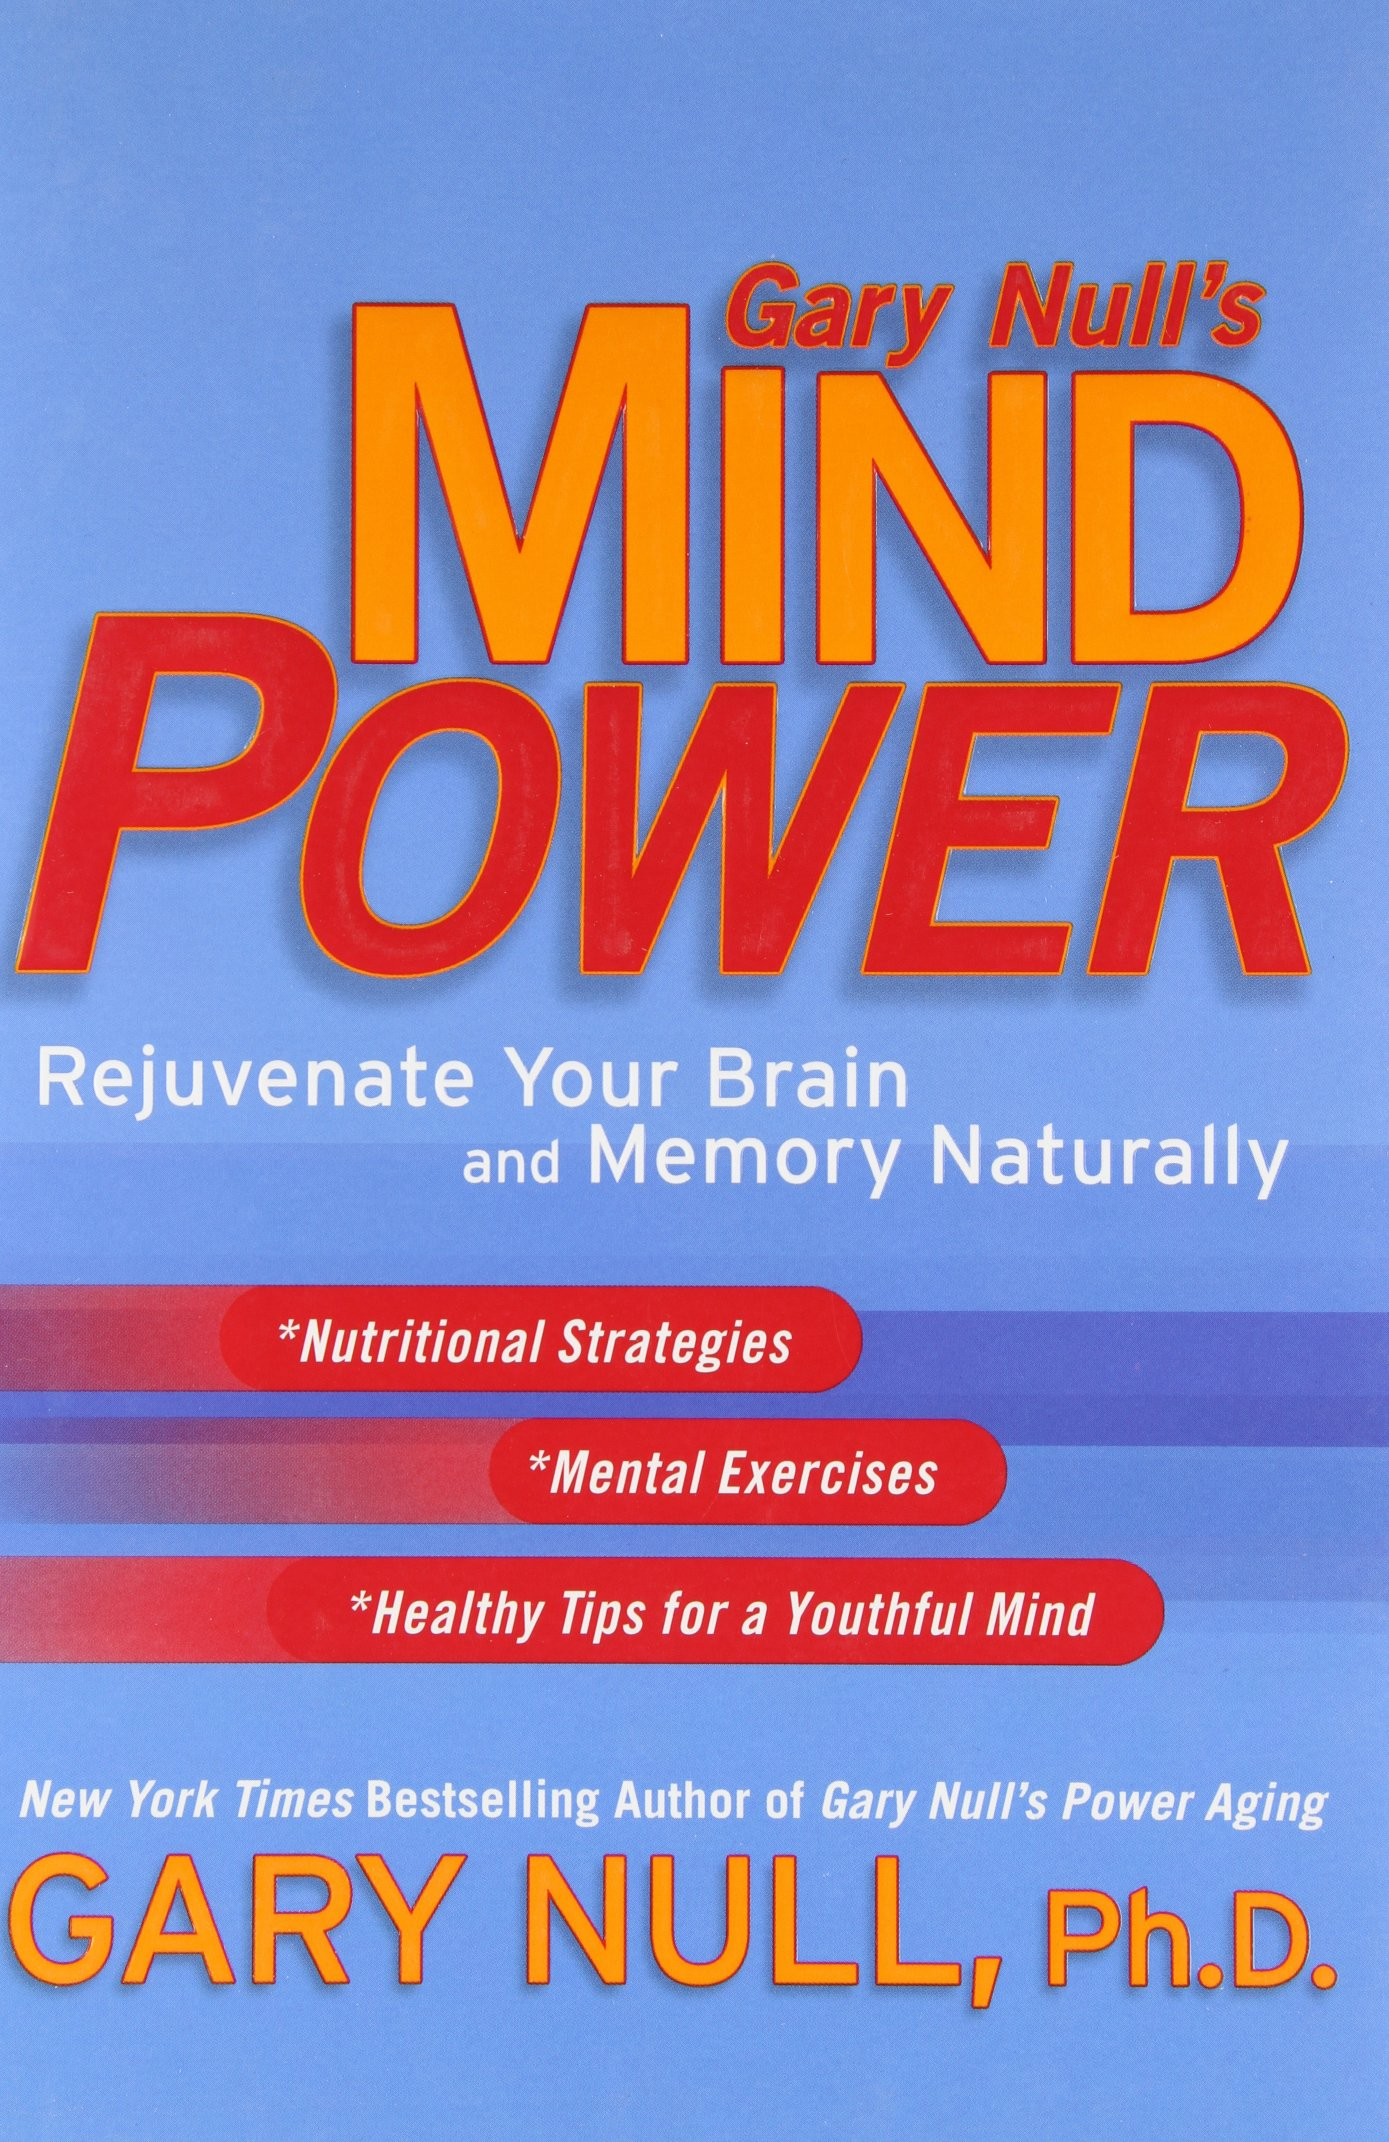 "Gary Null's mind power: rejuvenate your brain and memory naturally - By Gary NullGary Null has guided and inspired entire generations of Americans to adopt healthier living habits, proving that being older doesn't mean you have to look, feel, or accept the ""inevitable"" toll of years. In this revolutionary book, Null shows how to keep your brain fit and functional as you age.With a wellness plan rooted in extensive research, scientific data, and hundreds of studies, Gary Null has developed a strategy that not only protects your brain, but helps to counter the common mental effects of aging, including anxiety, depression, memory loss, and insomnia, as well as more serious conditions such as Alzheimer's and Parkinson's. Whether you're a baby boomer or a senior citizen, Null shows you steps you can take to stay mentally sharp."